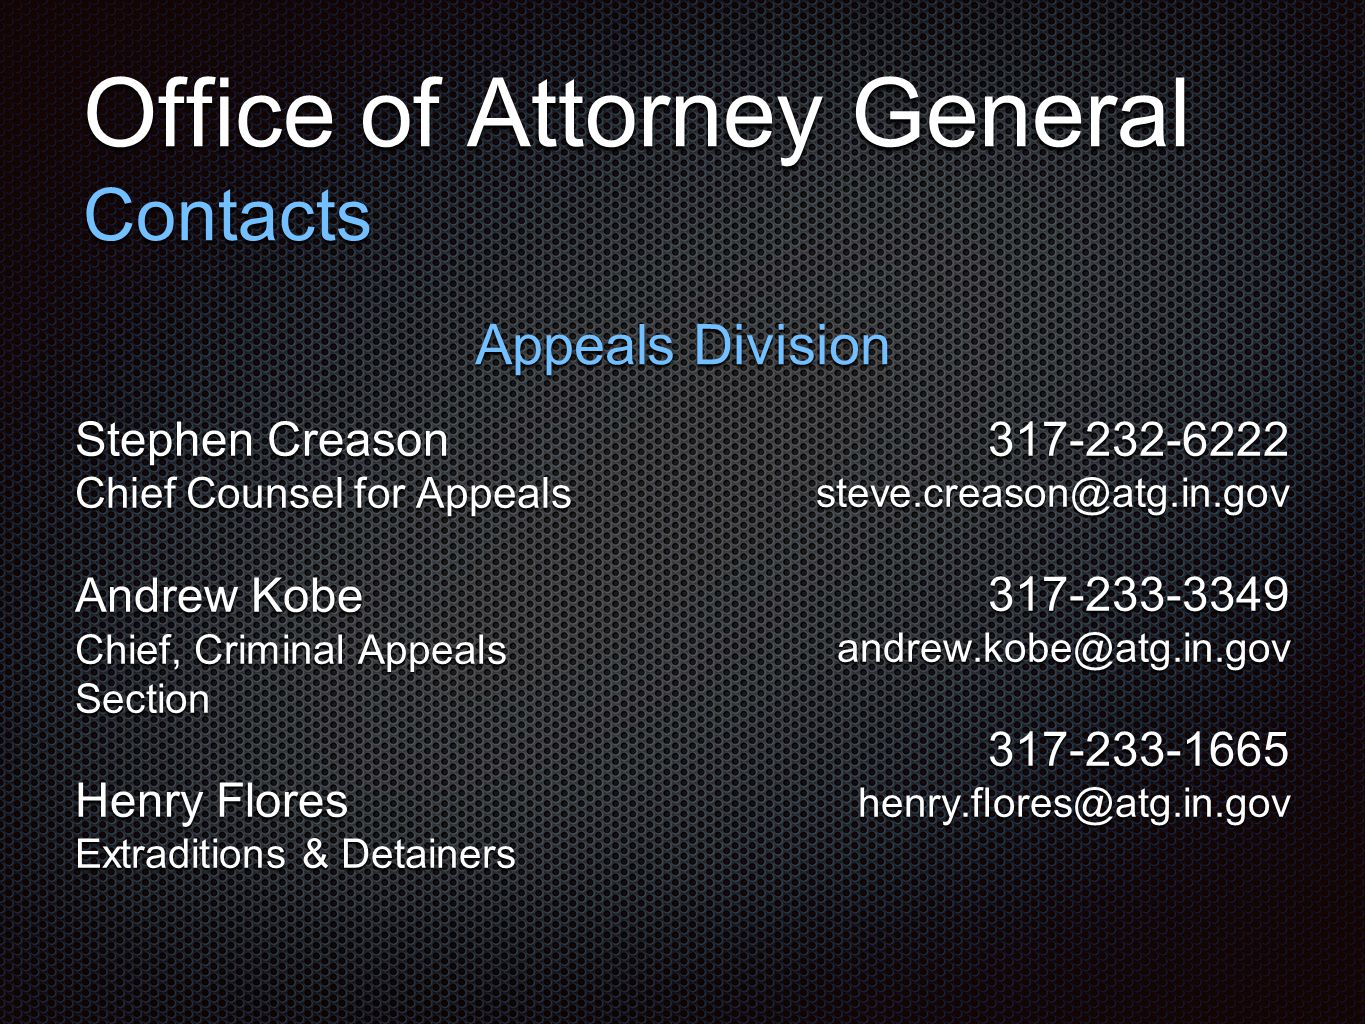 Office of Attorney General Contacts Appeals Division Stephen Creason Chief Counsel for Appeals Andrew Kobe Chief, Criminal Appeals Section Henry Flores Extraditions & Detainers 317-232-6222 steve.creason@atg.in.gov 317-233-3349 andrew.kobe@atg.in.gov 317-233-1665 henry.flores@atg.in.gov